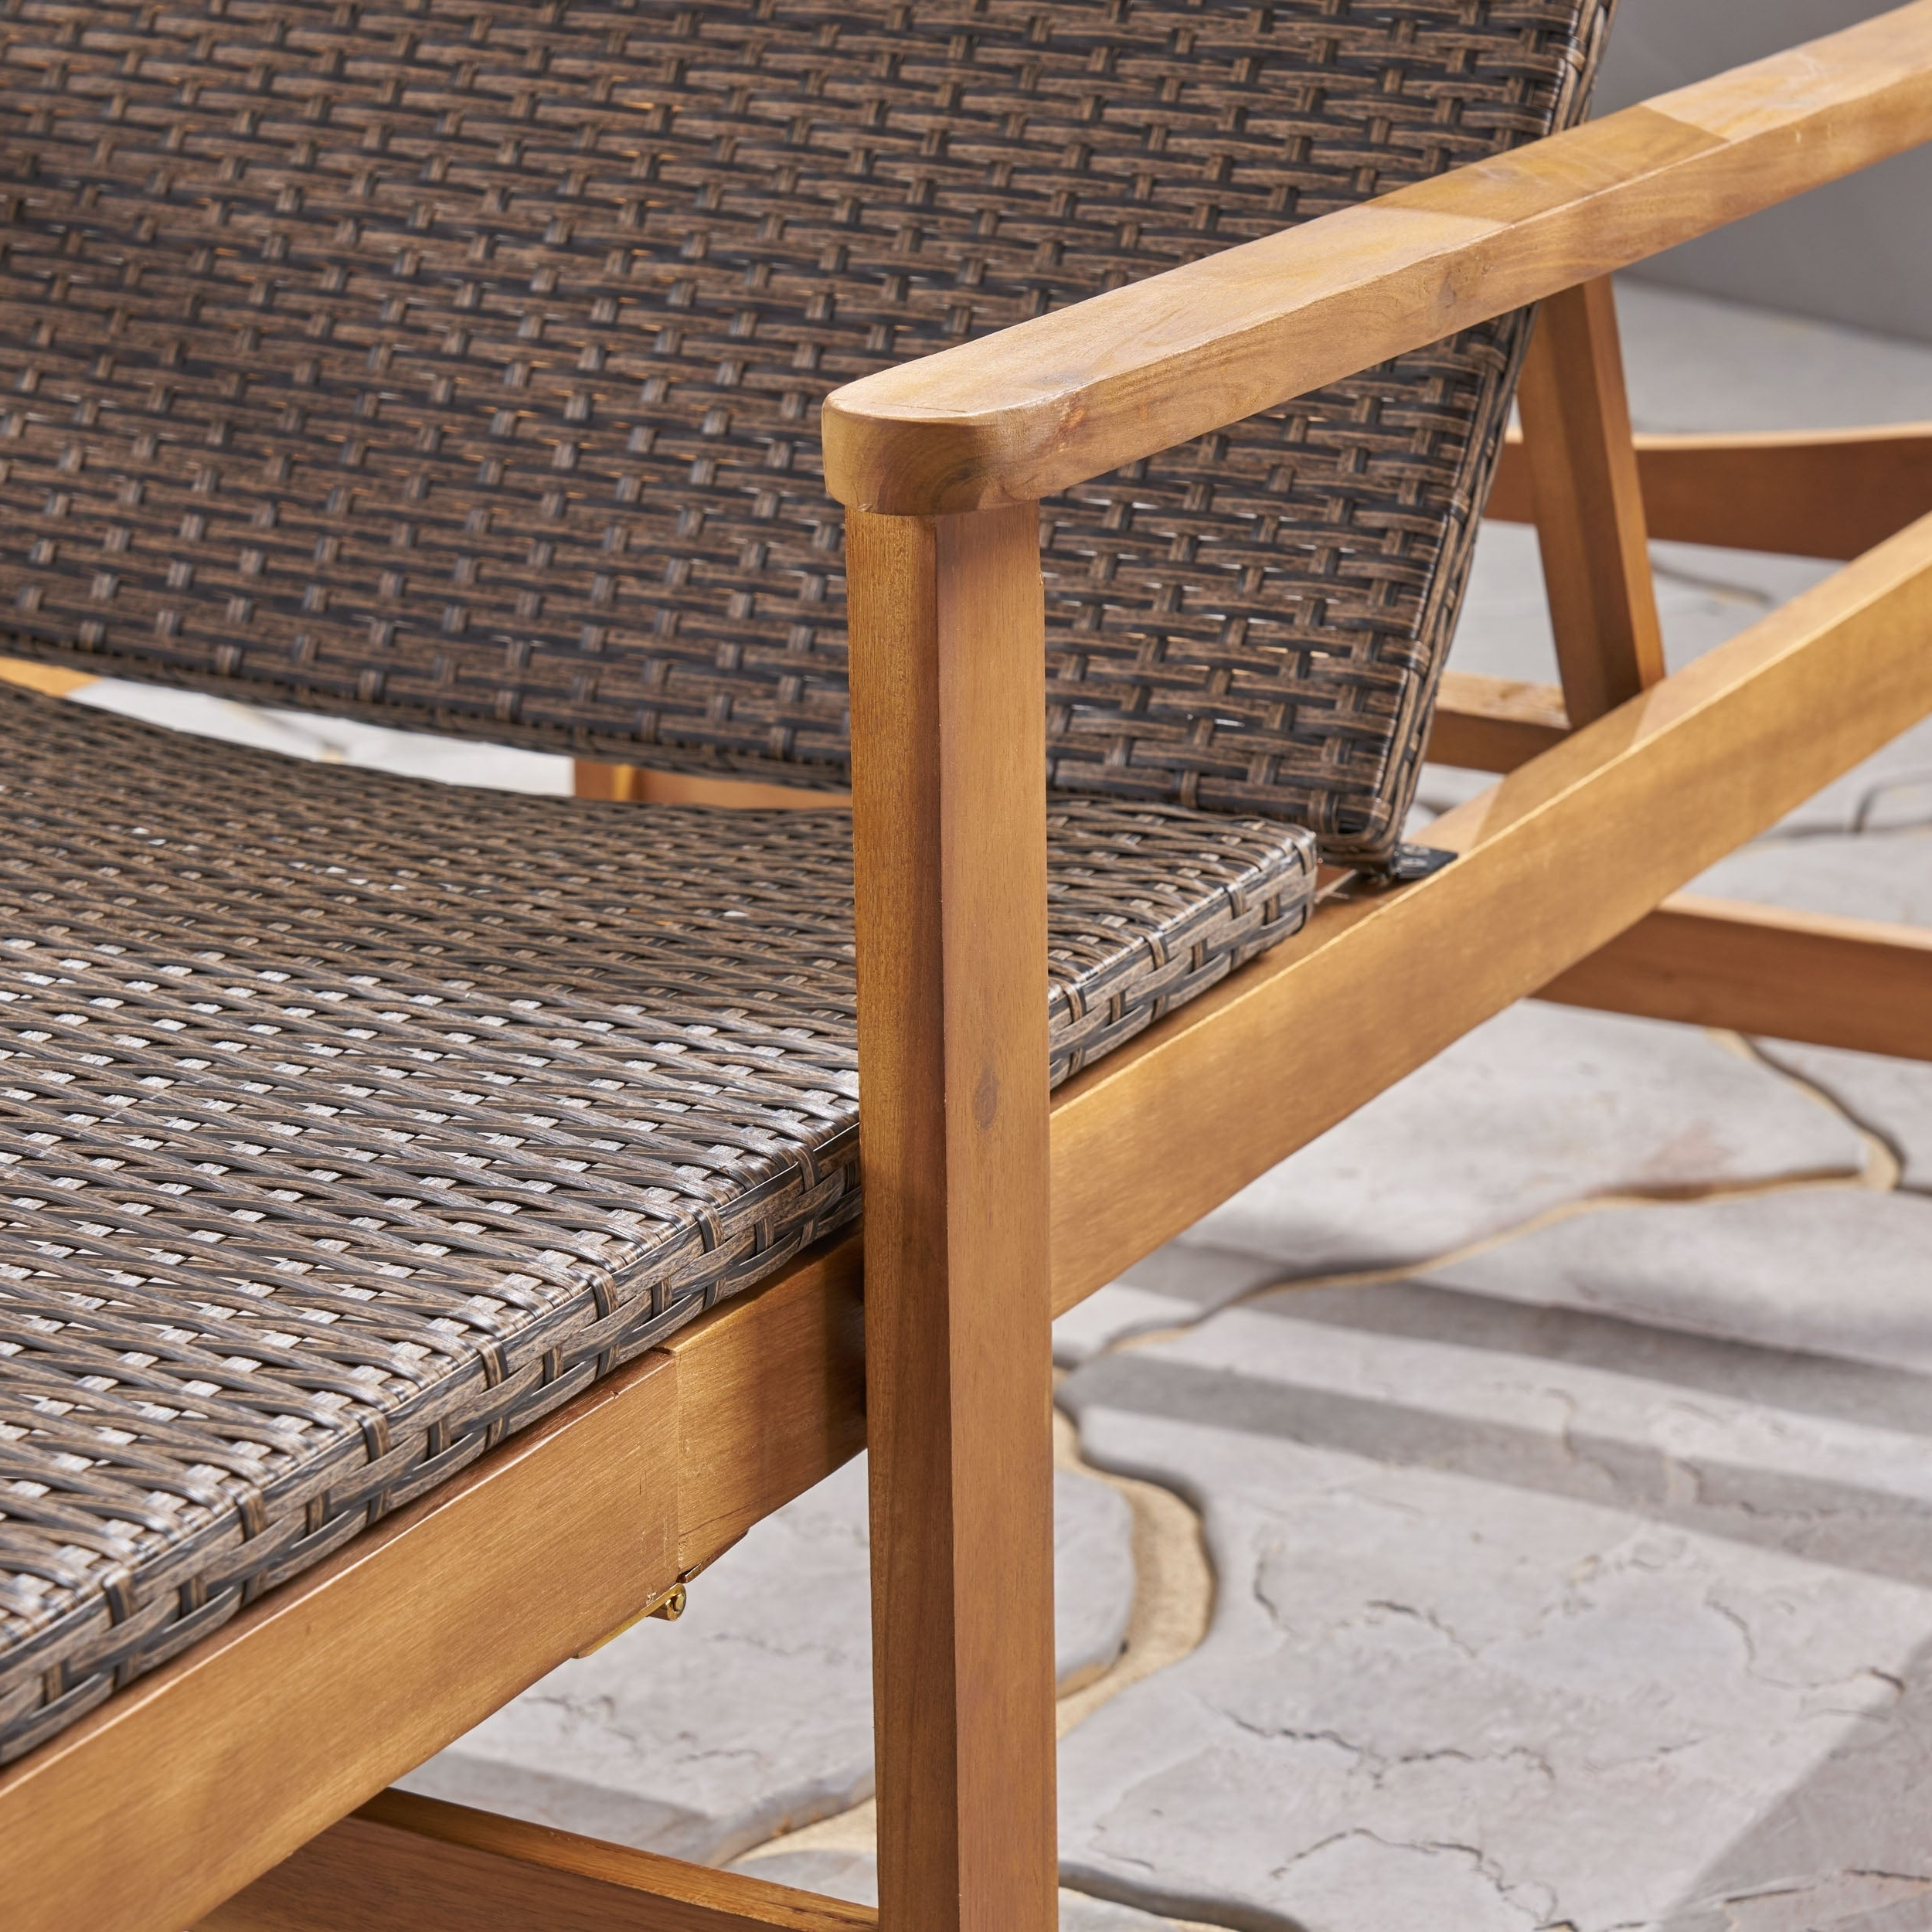 2020 Details About Hampton Outdoor Rustic Acacia Wood Chaise Lounge With Wicker For Outdoor Rustic Acacia Wood Chaise Lounges With Wicker Seat (View 4 of 25)